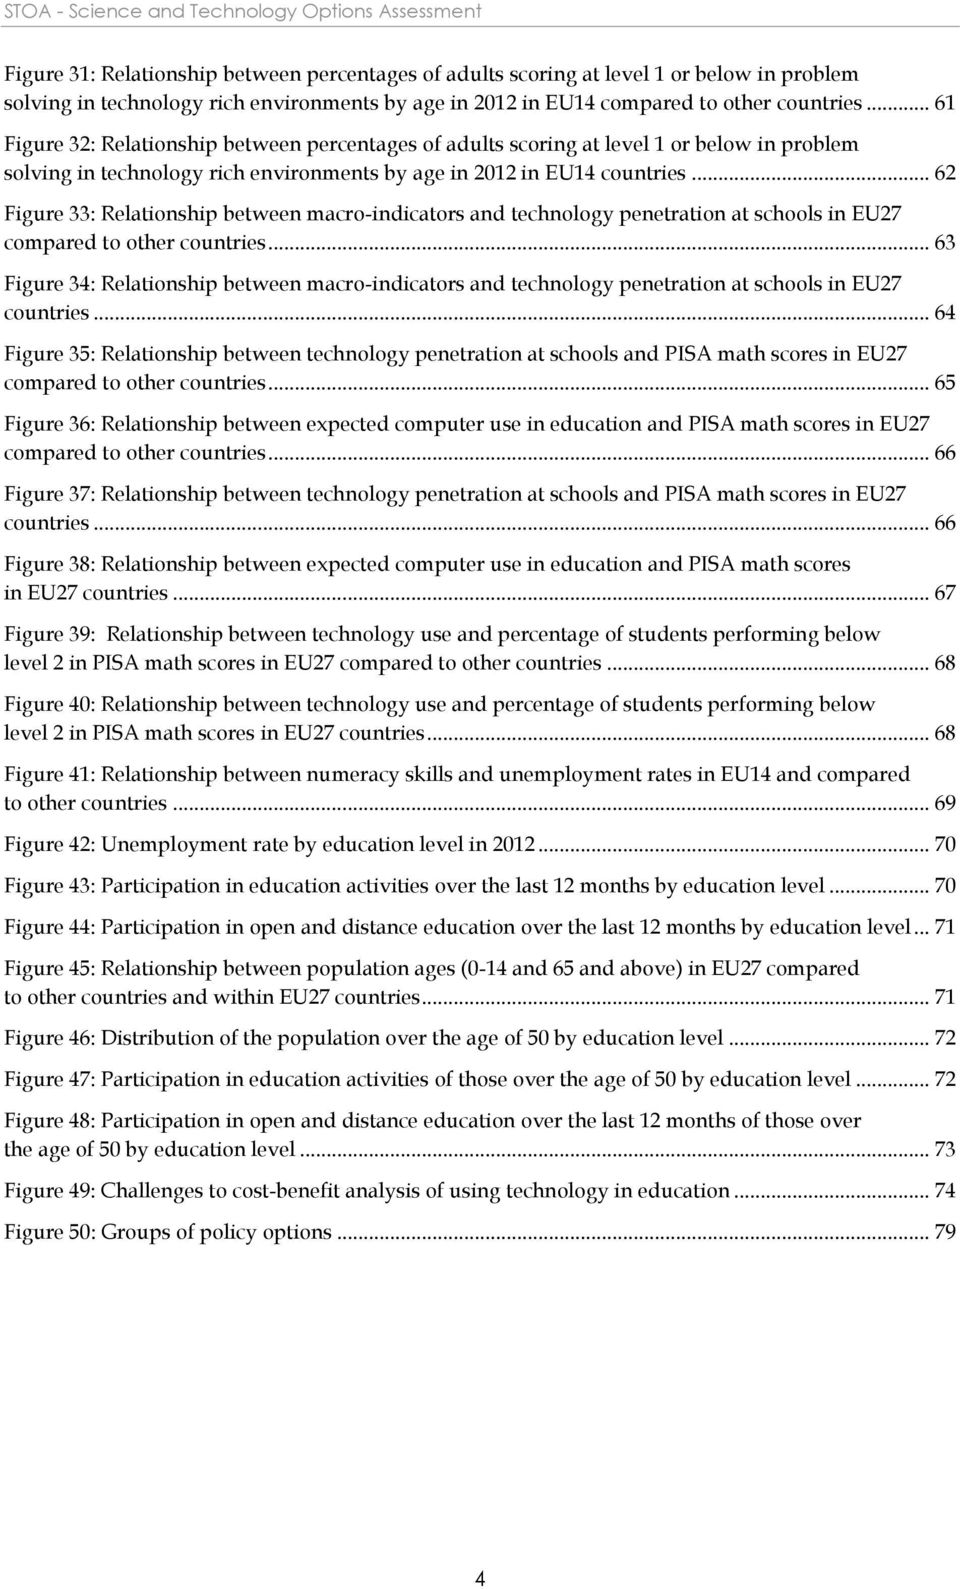 .. 61 Figure 32: Relationship between percentages of adults scoring at level 1 or below in problem solving in technology rich environments by age in 2012 in EU14 countries.